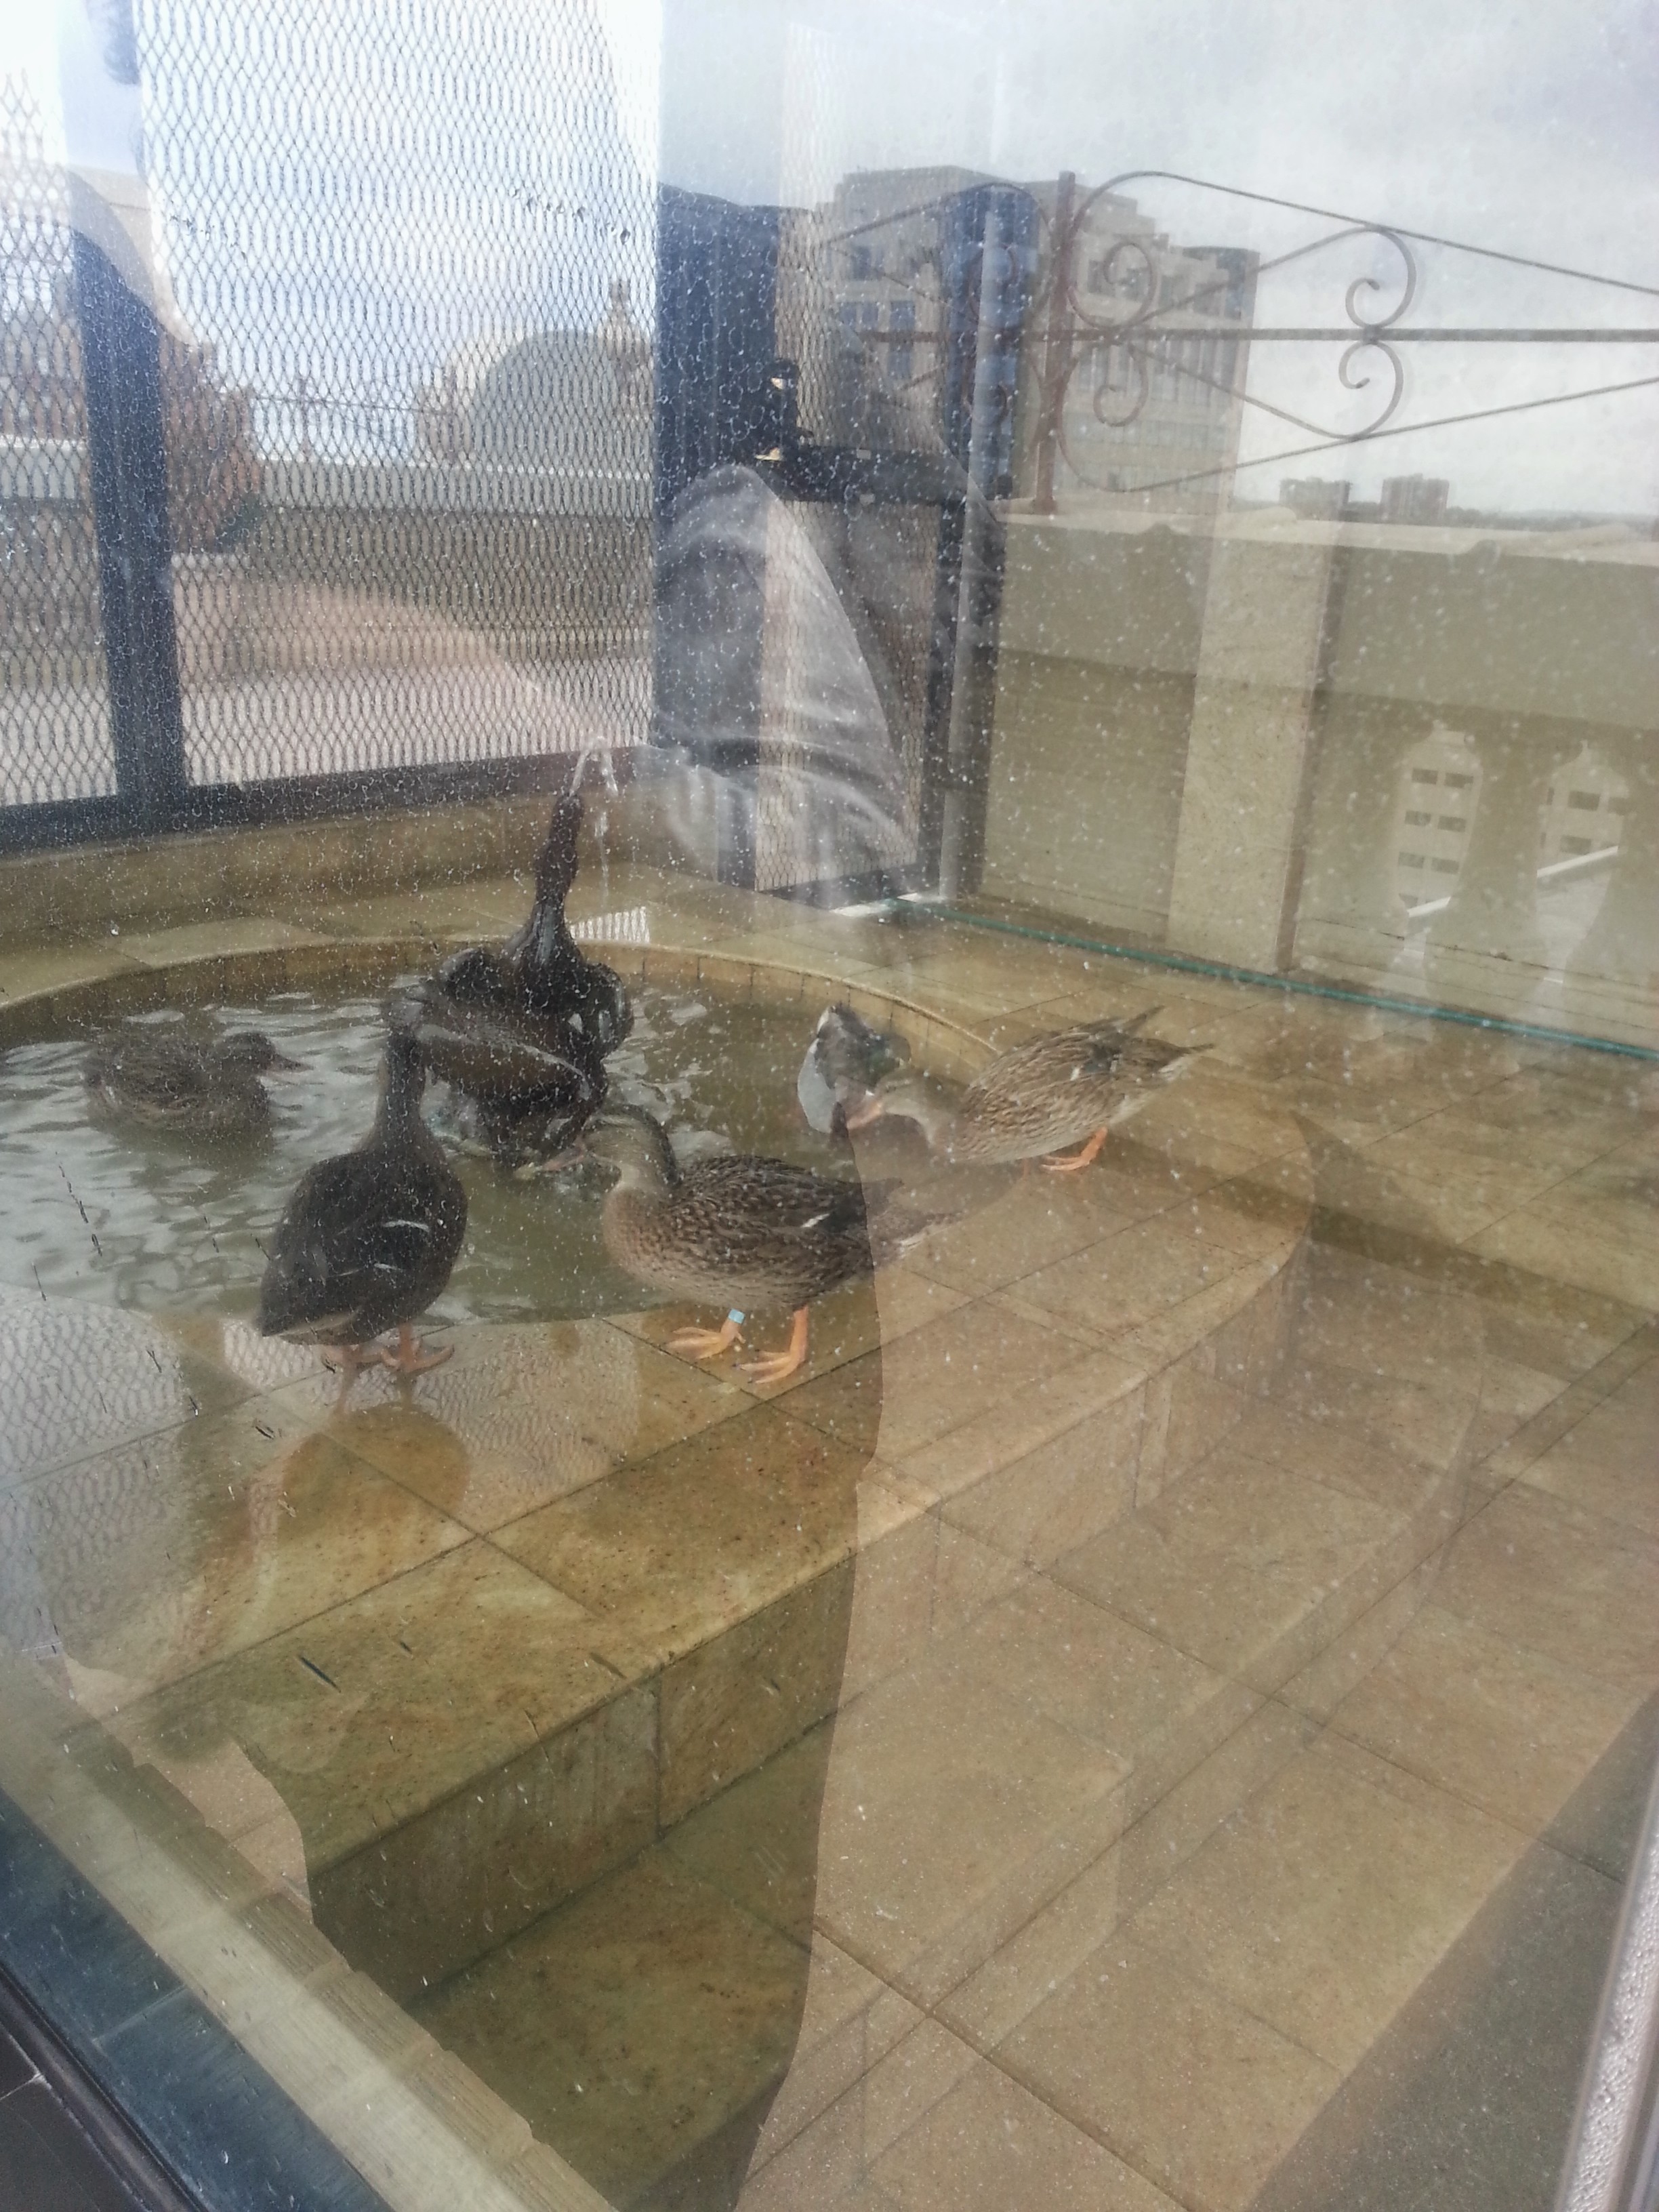 I guess they alternate ducks who go into the fountain.